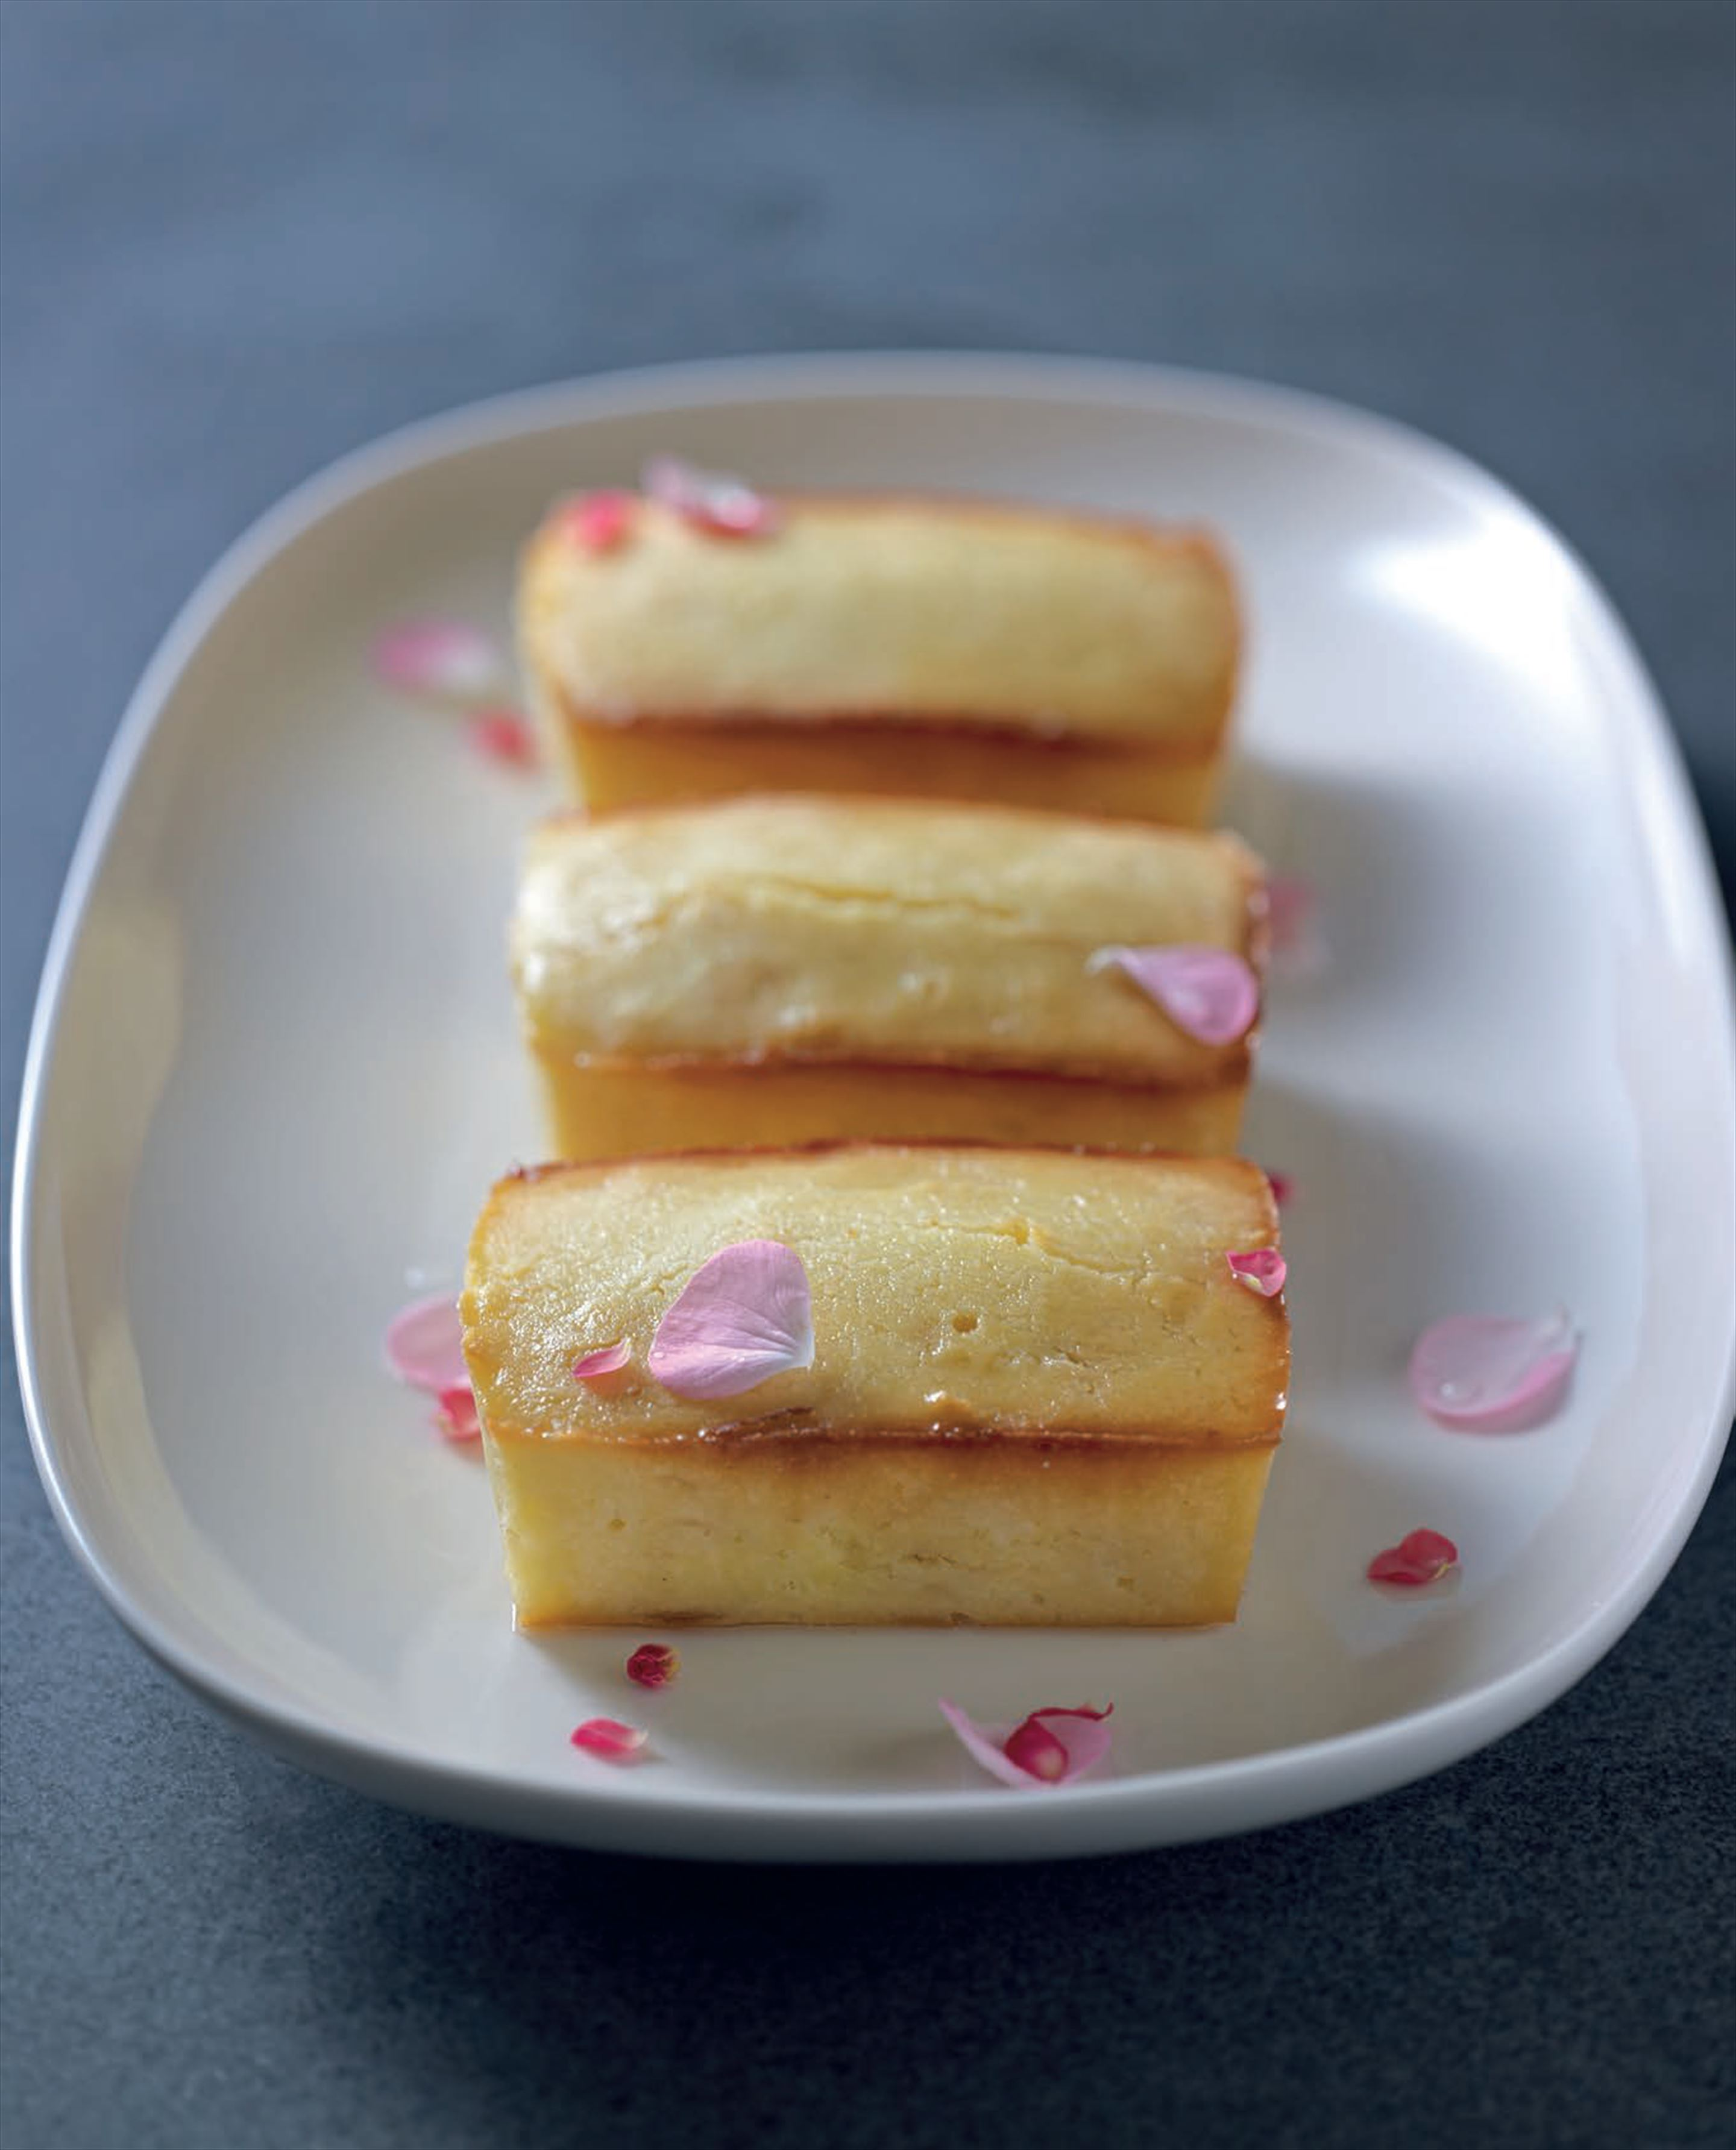 Little lemon–yoghurt cakes